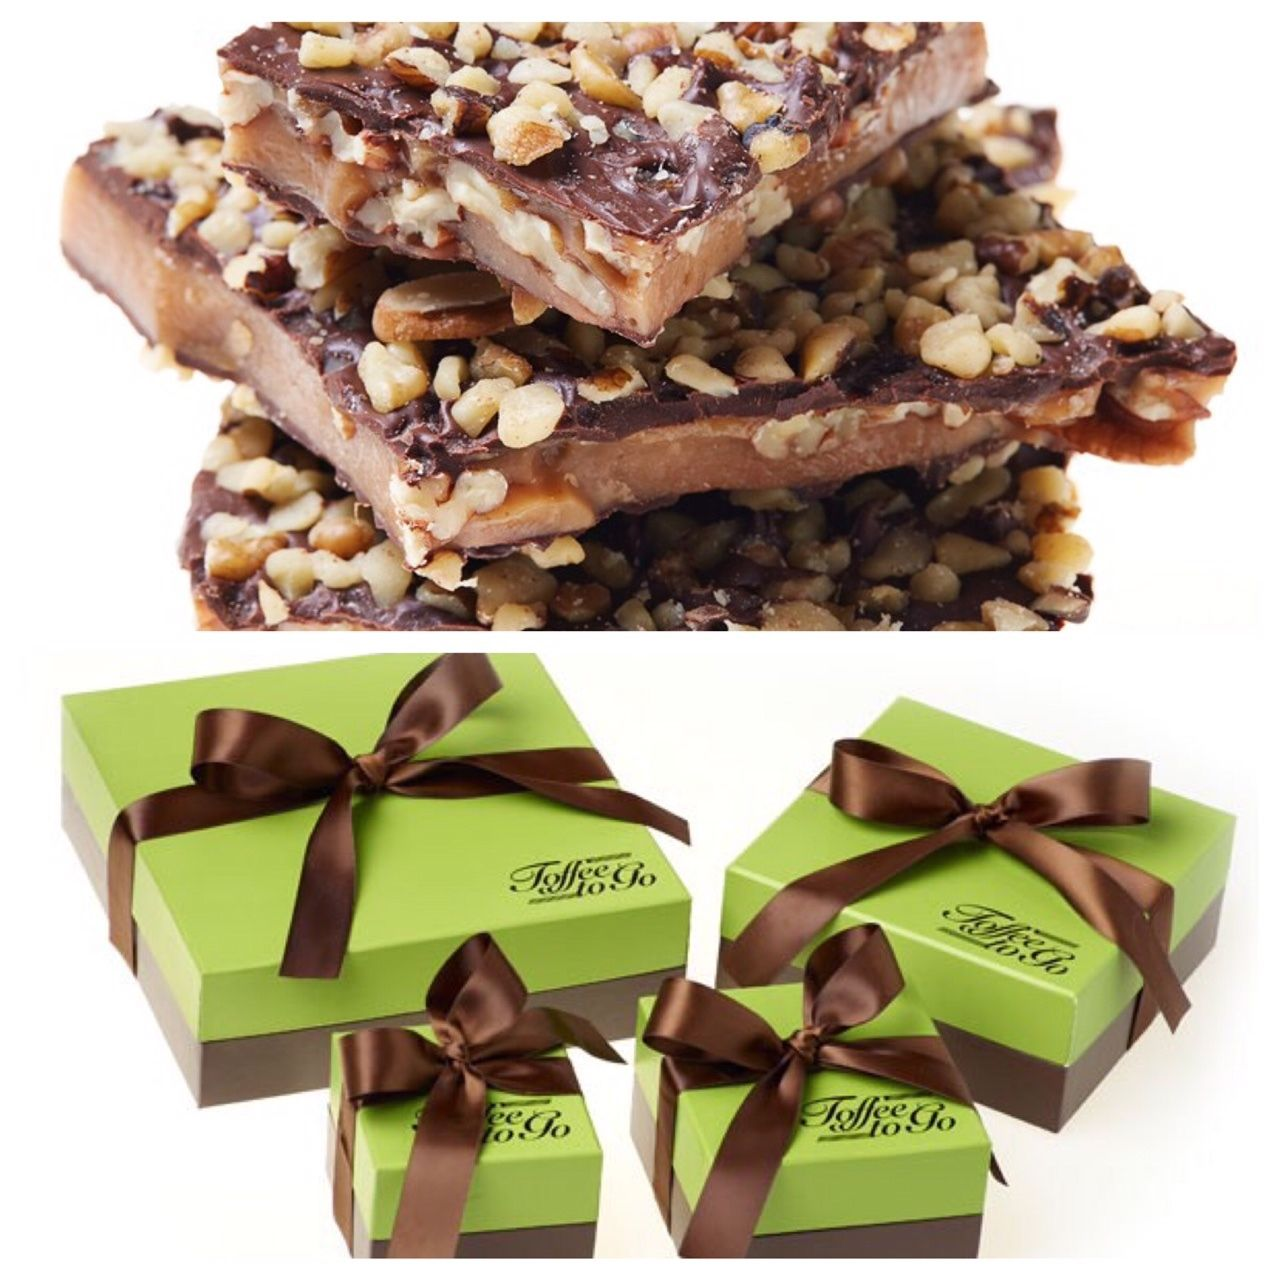 Need hostess gifts for the holidays? This toffee is scrumptious! Buttery and crunchy but not at all sticky. And it's already pretty to present, no wrapping required!